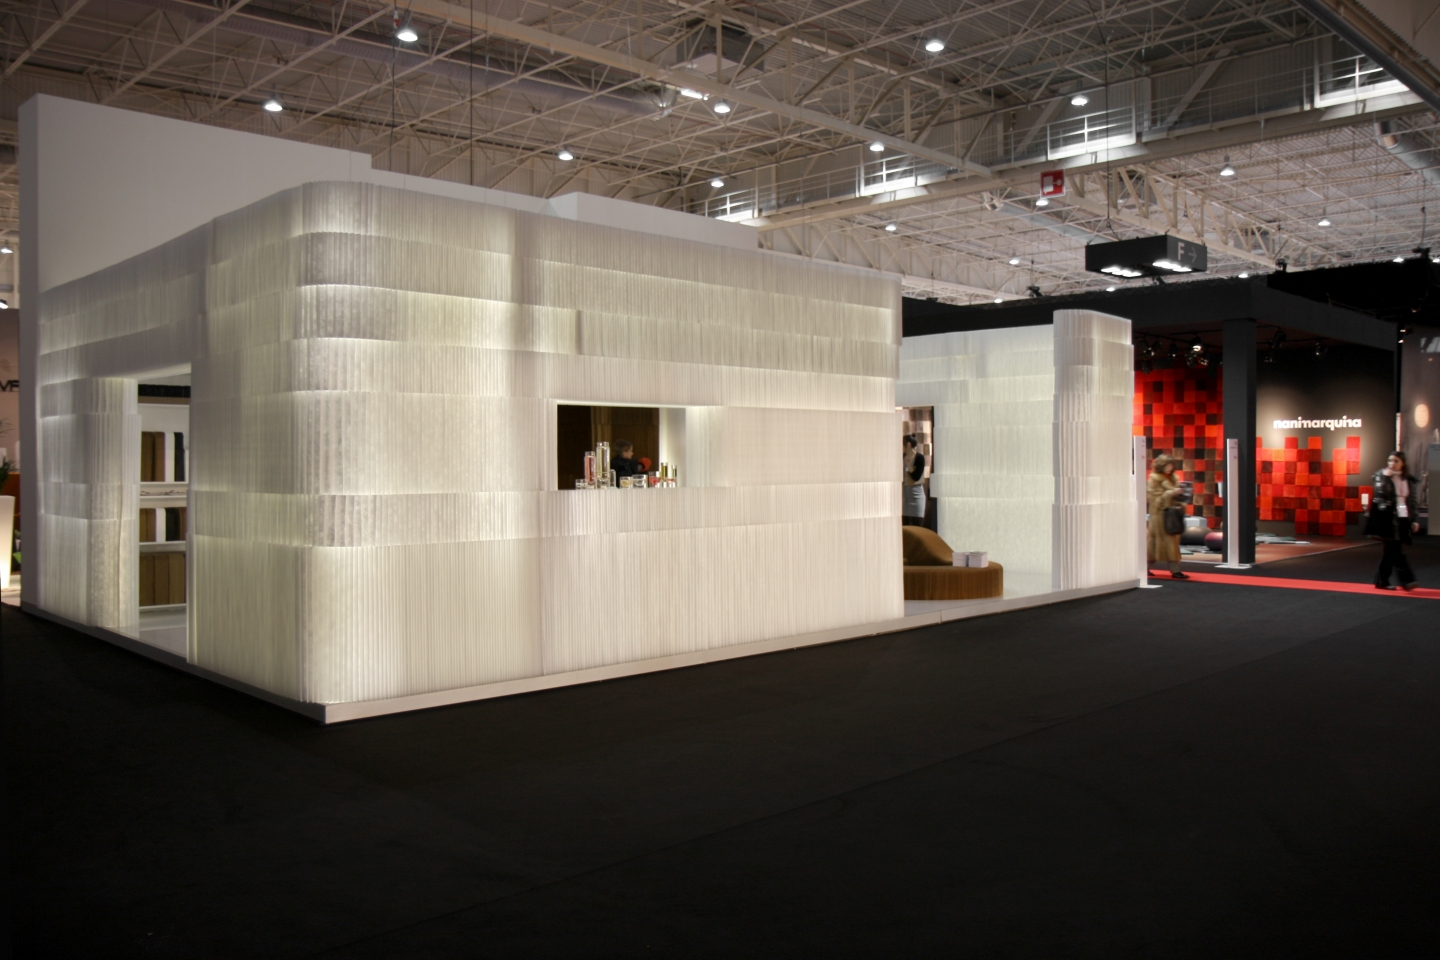 textile softblock / modular room divider - molo soft collection of flexible, modular space partitions, seating, tables and lighting at Maison & Objet 2010 in Paris